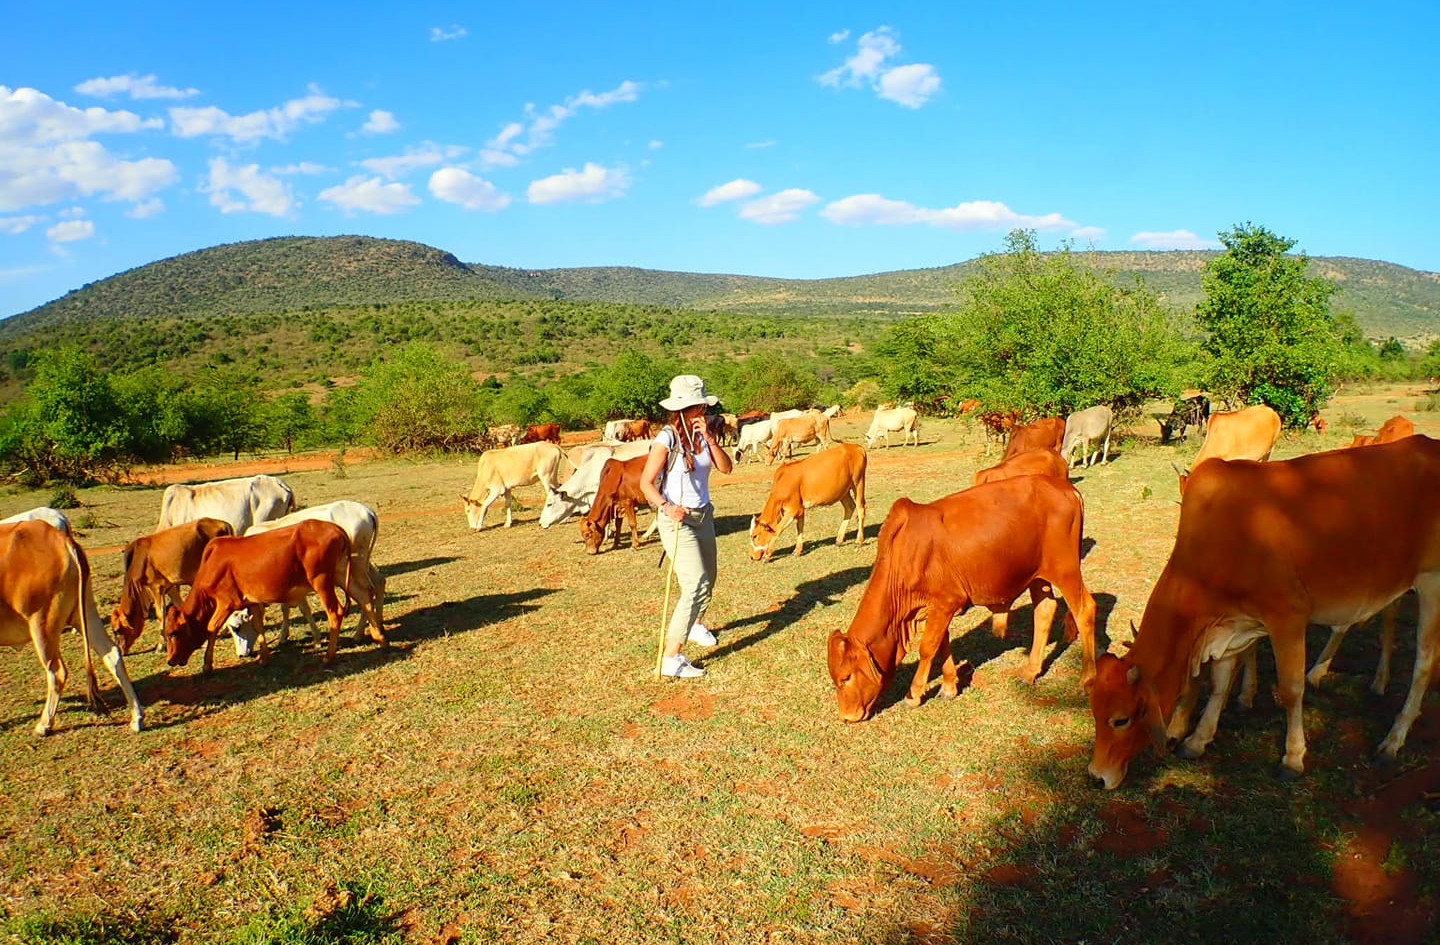 maasai herding experience with Audrianna